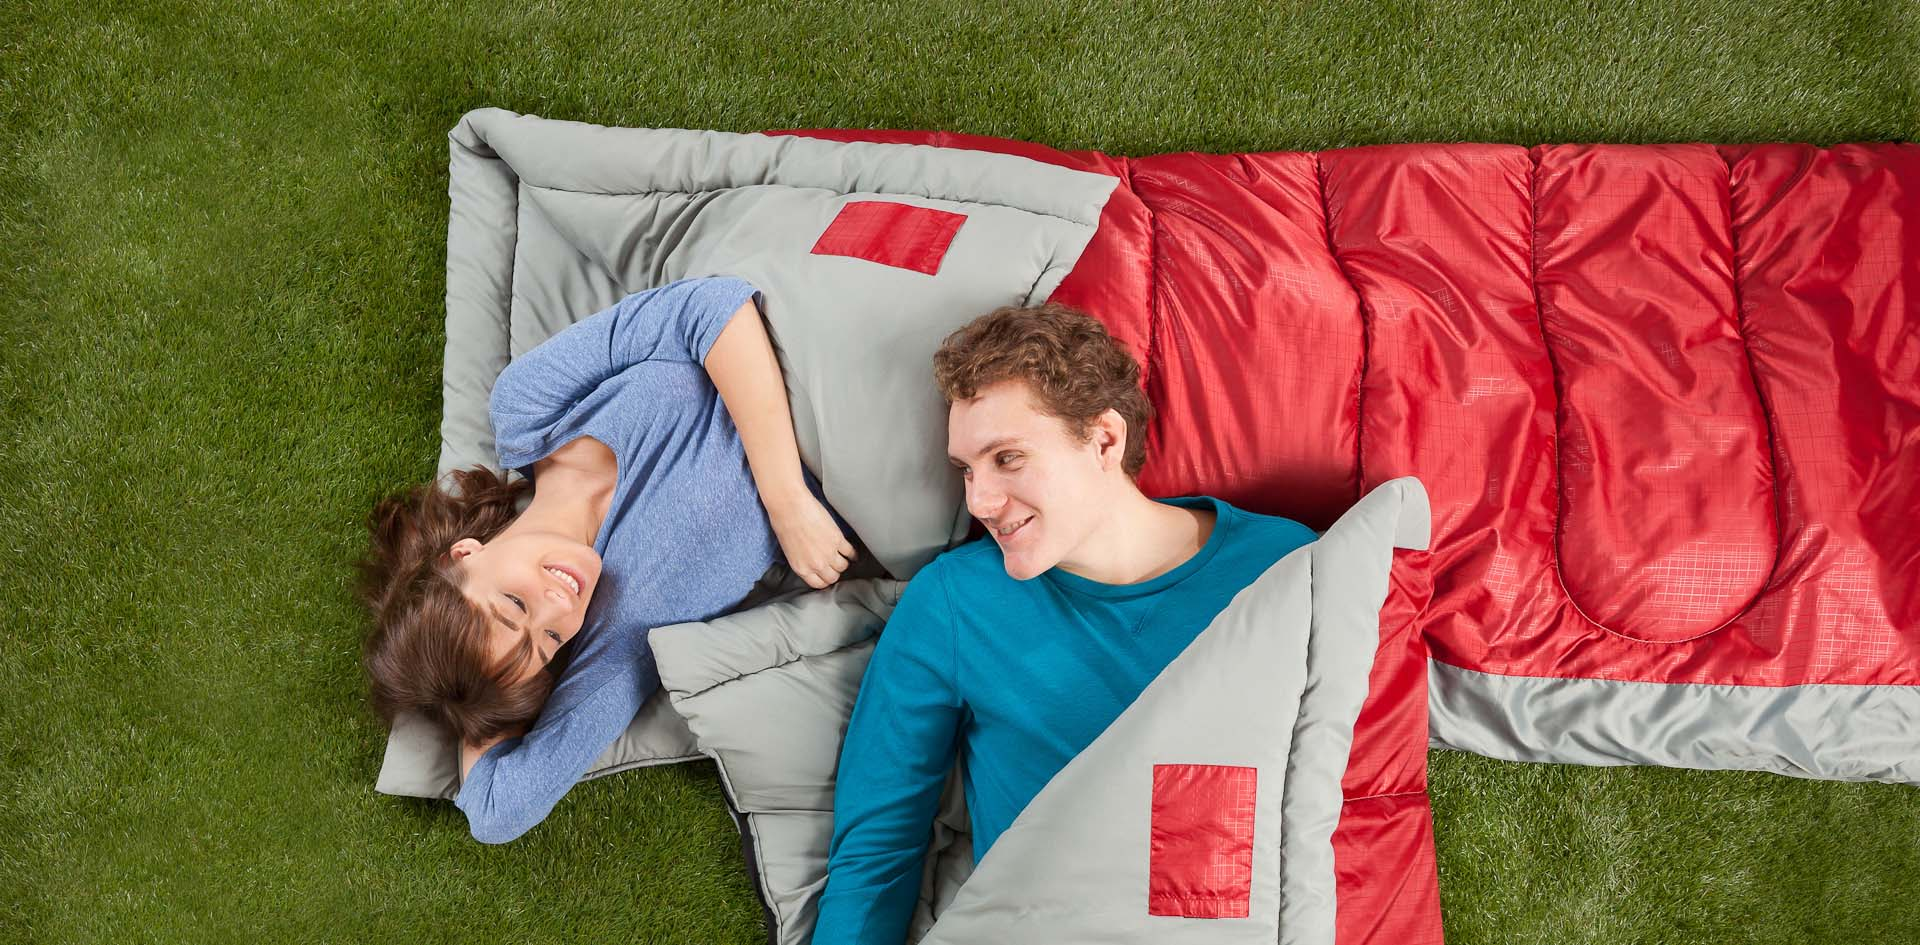 A couple lies in matching Coleman sleeping bags in grass